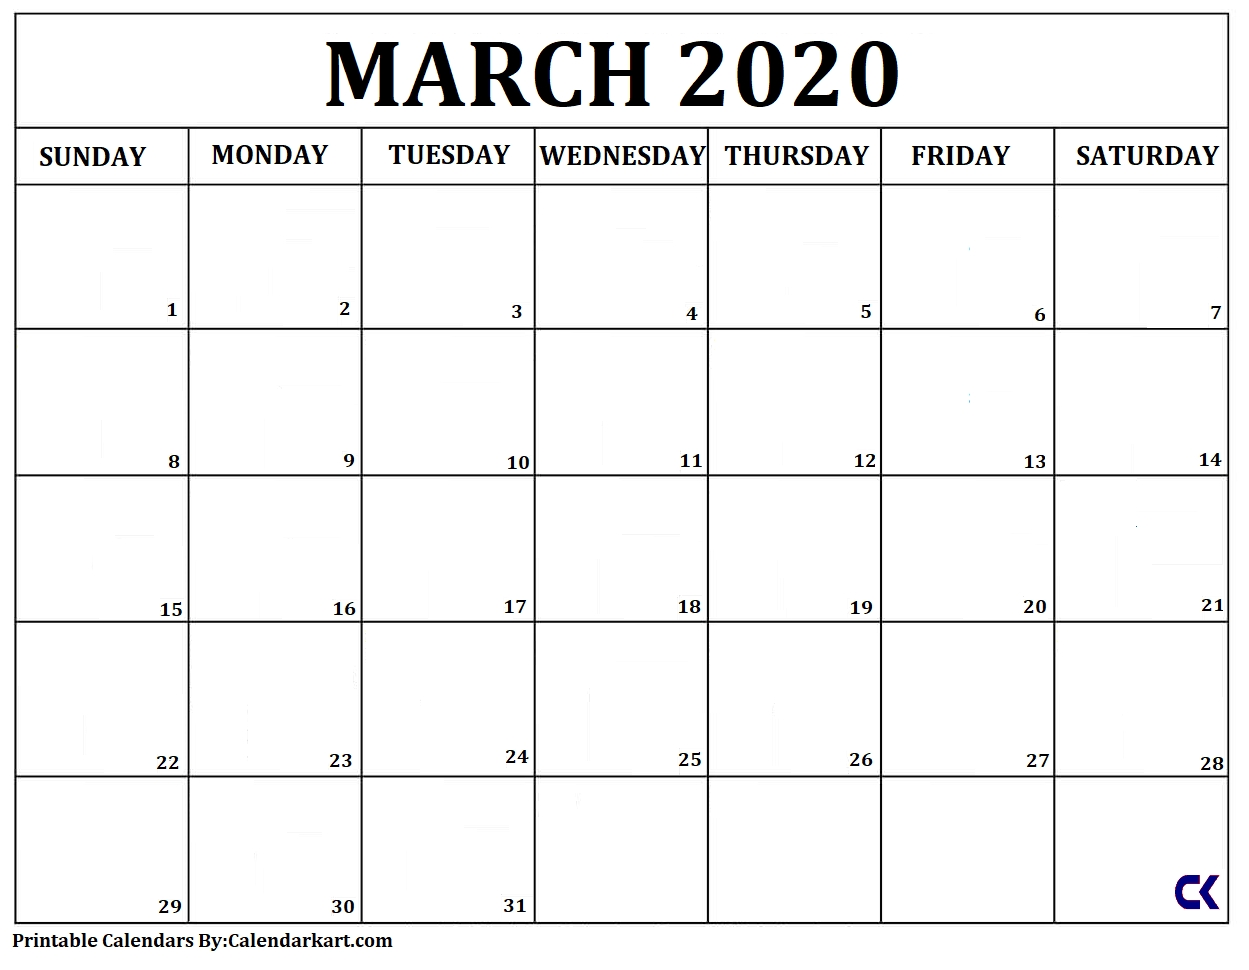 Free Printable Calendars 2020 And 2021: Monthly & Yearly in Printable Calendar Large Box 2020